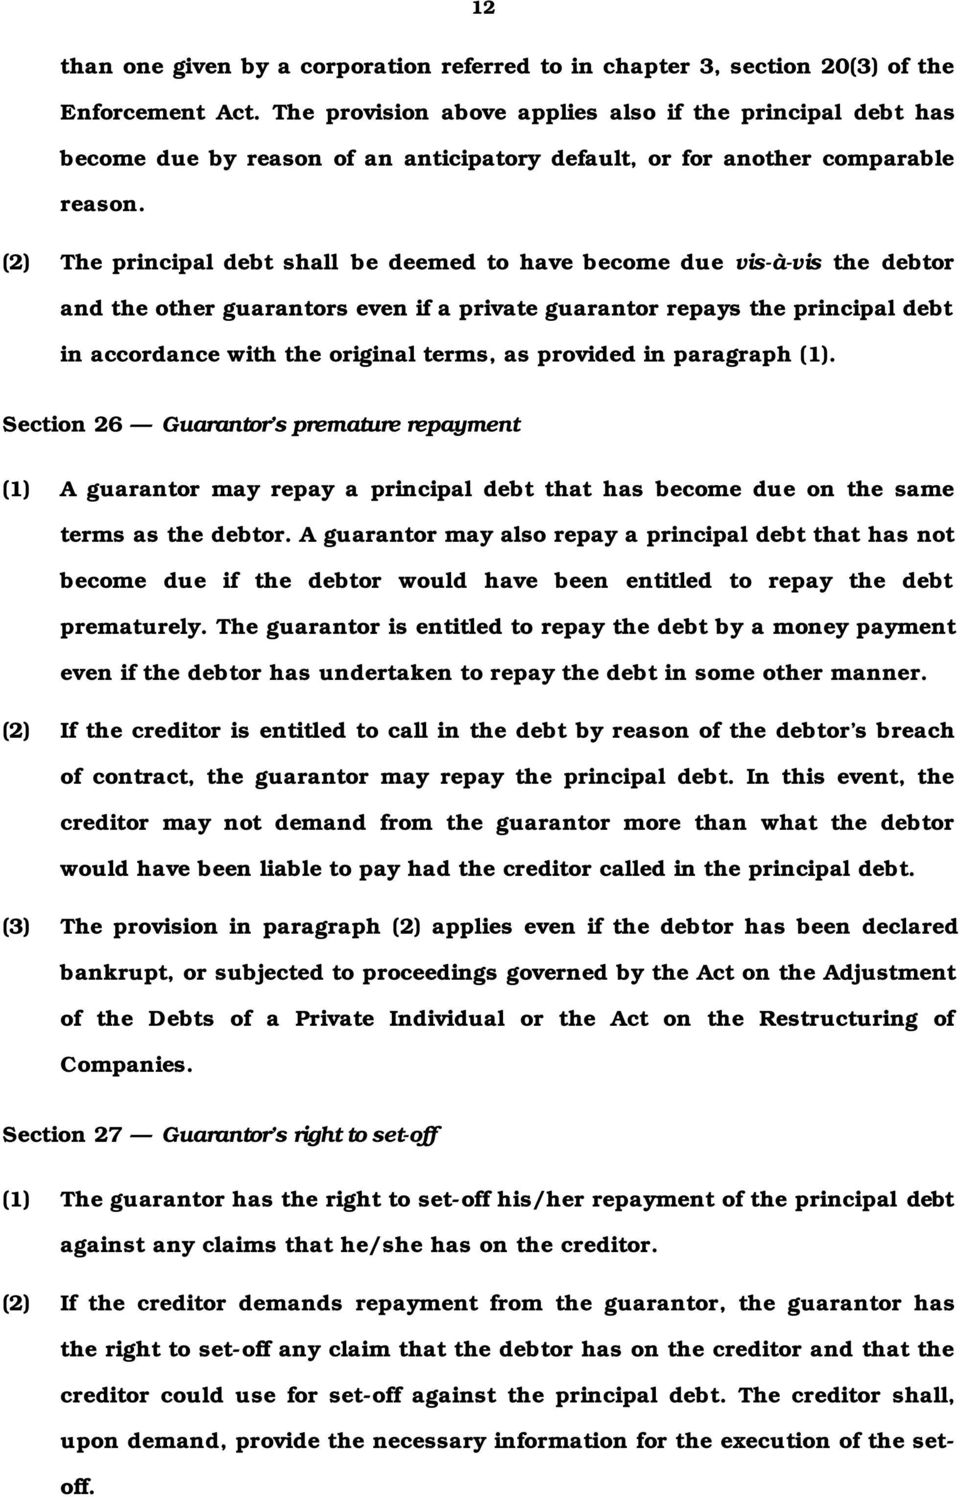 (2) The principal debt shall be deemed to have become due vis-à-vis the debtor and the other guarantors even if a private guarantor repays the principal debt in accordance with the original terms, as